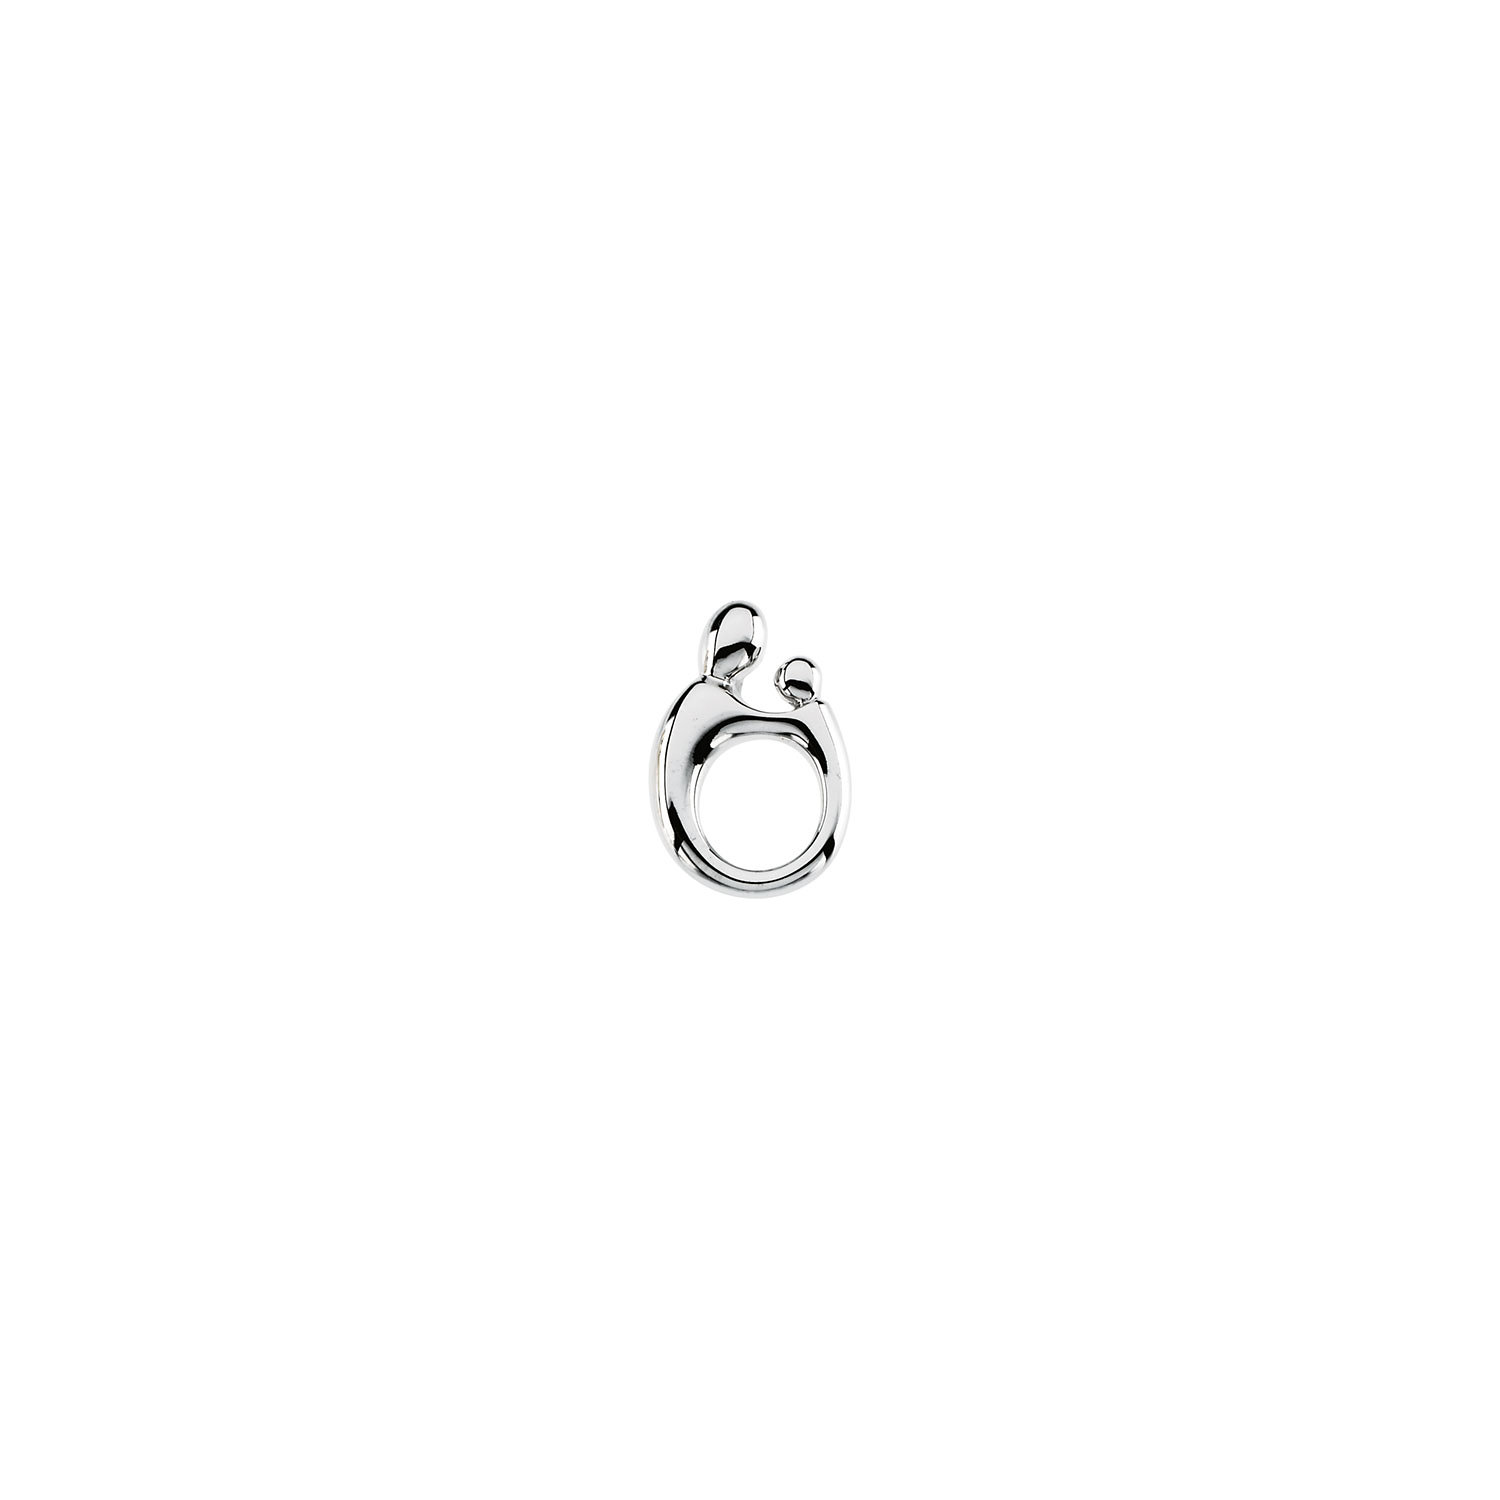 SilverTenet 14K White Gold Mother and Child Pendant - Size: 20.50X13.50 Mm - Mother & Child Lg. Solid Pend - 30 ...